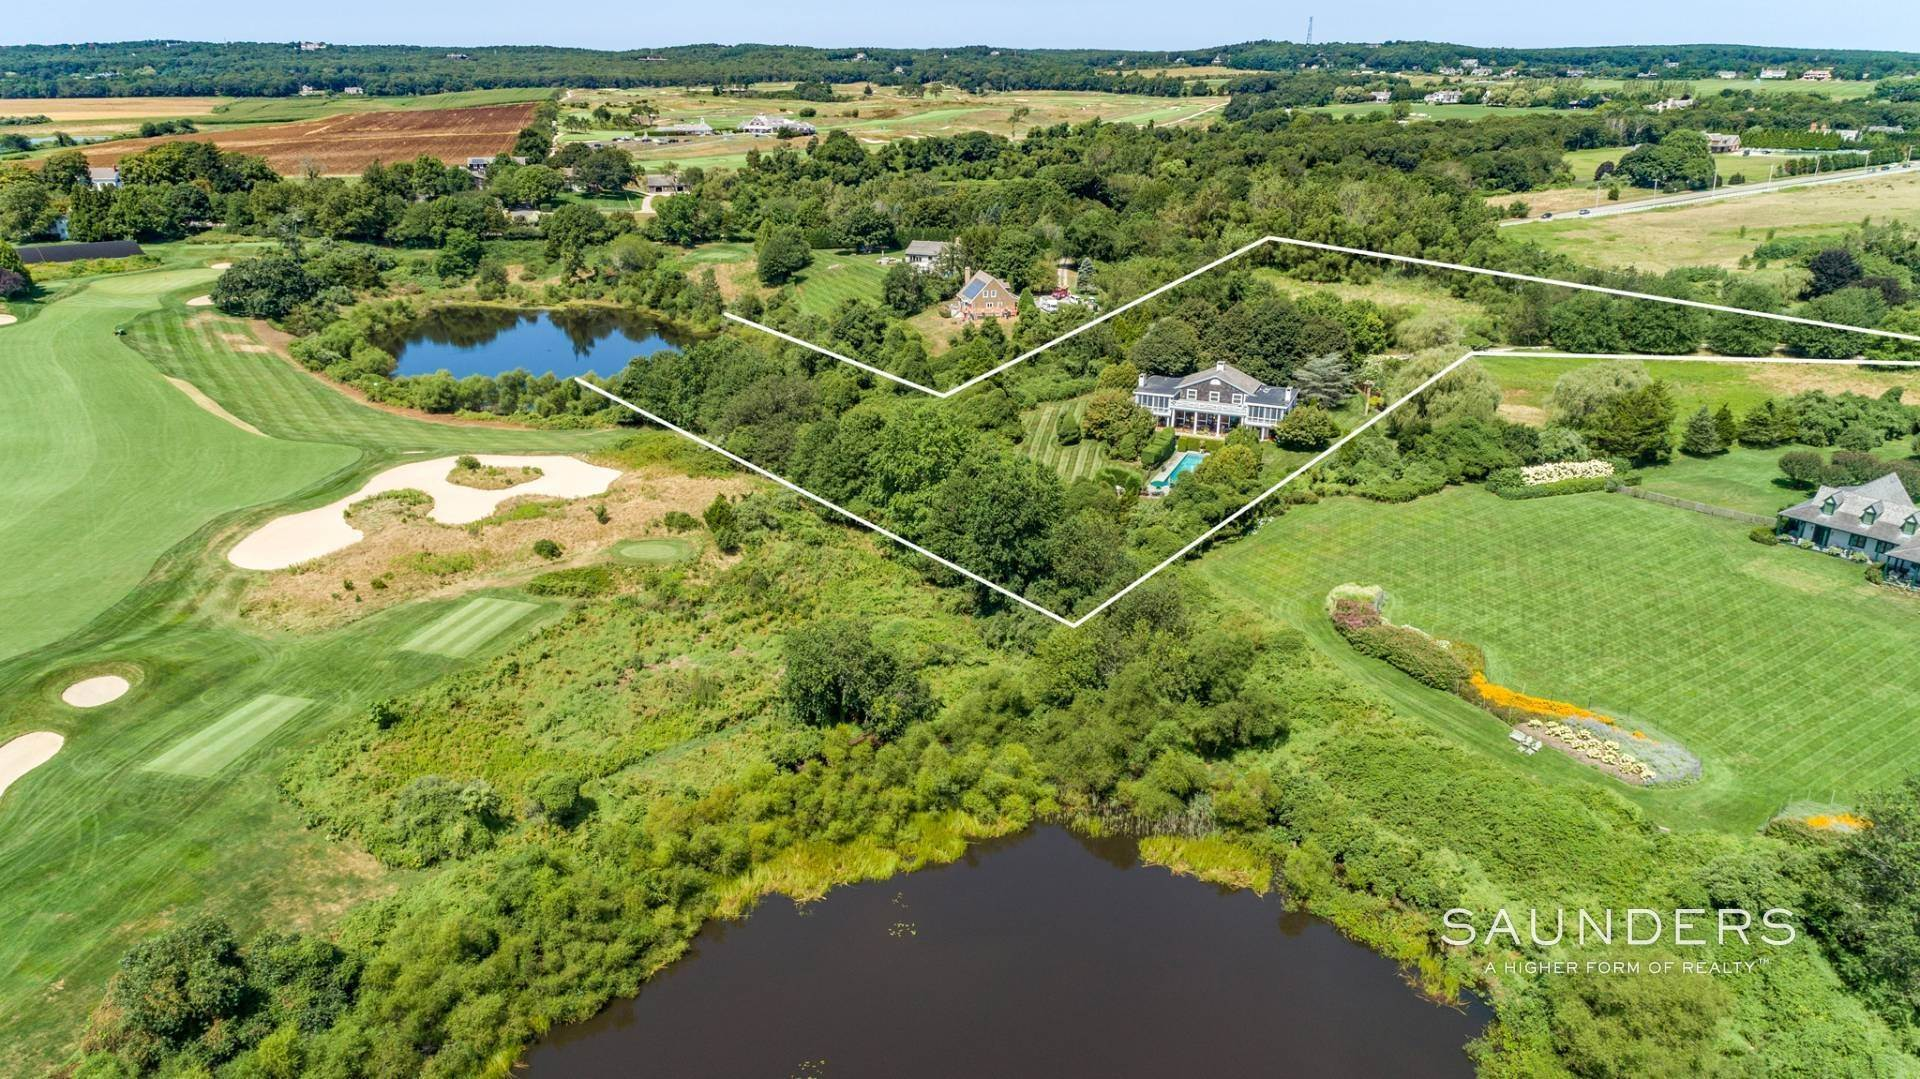 Land for Sale at Out Of Site 412 Mitchell Lane, Bridgehampton, Southampton Town, NY 11932